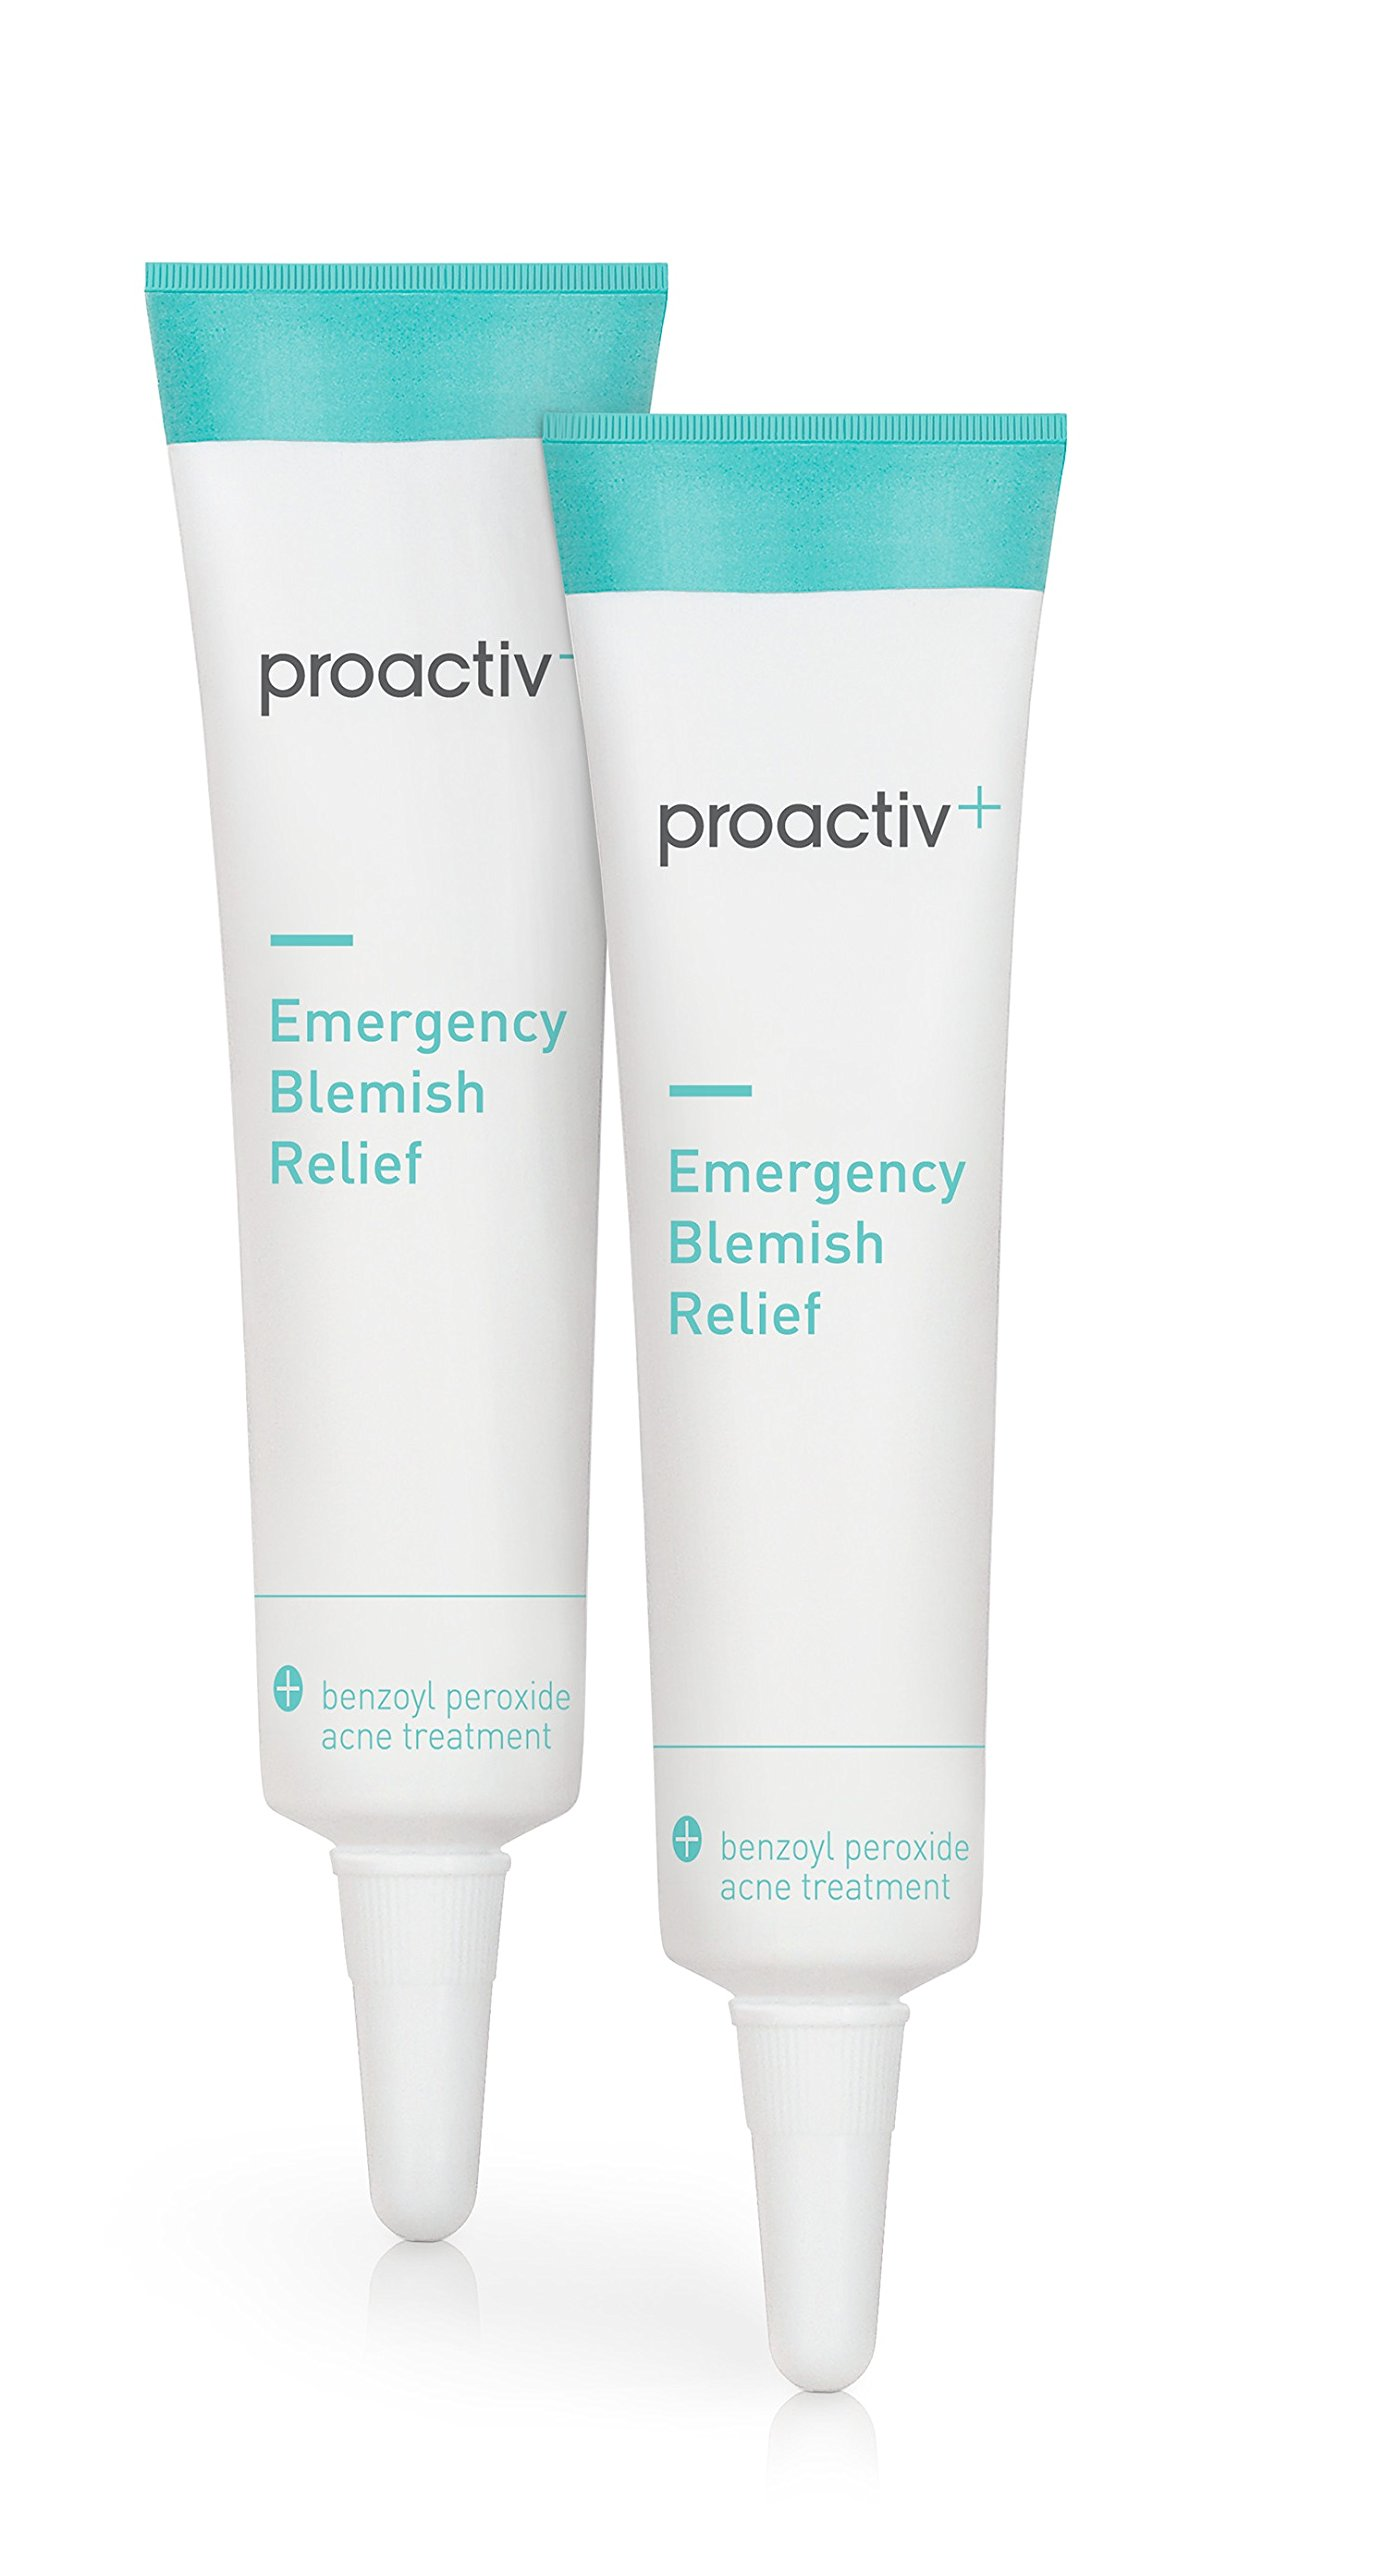 Proactiv Emergency Blemish Relief, 2 Pack (0.33 ounce each) by Proactiv